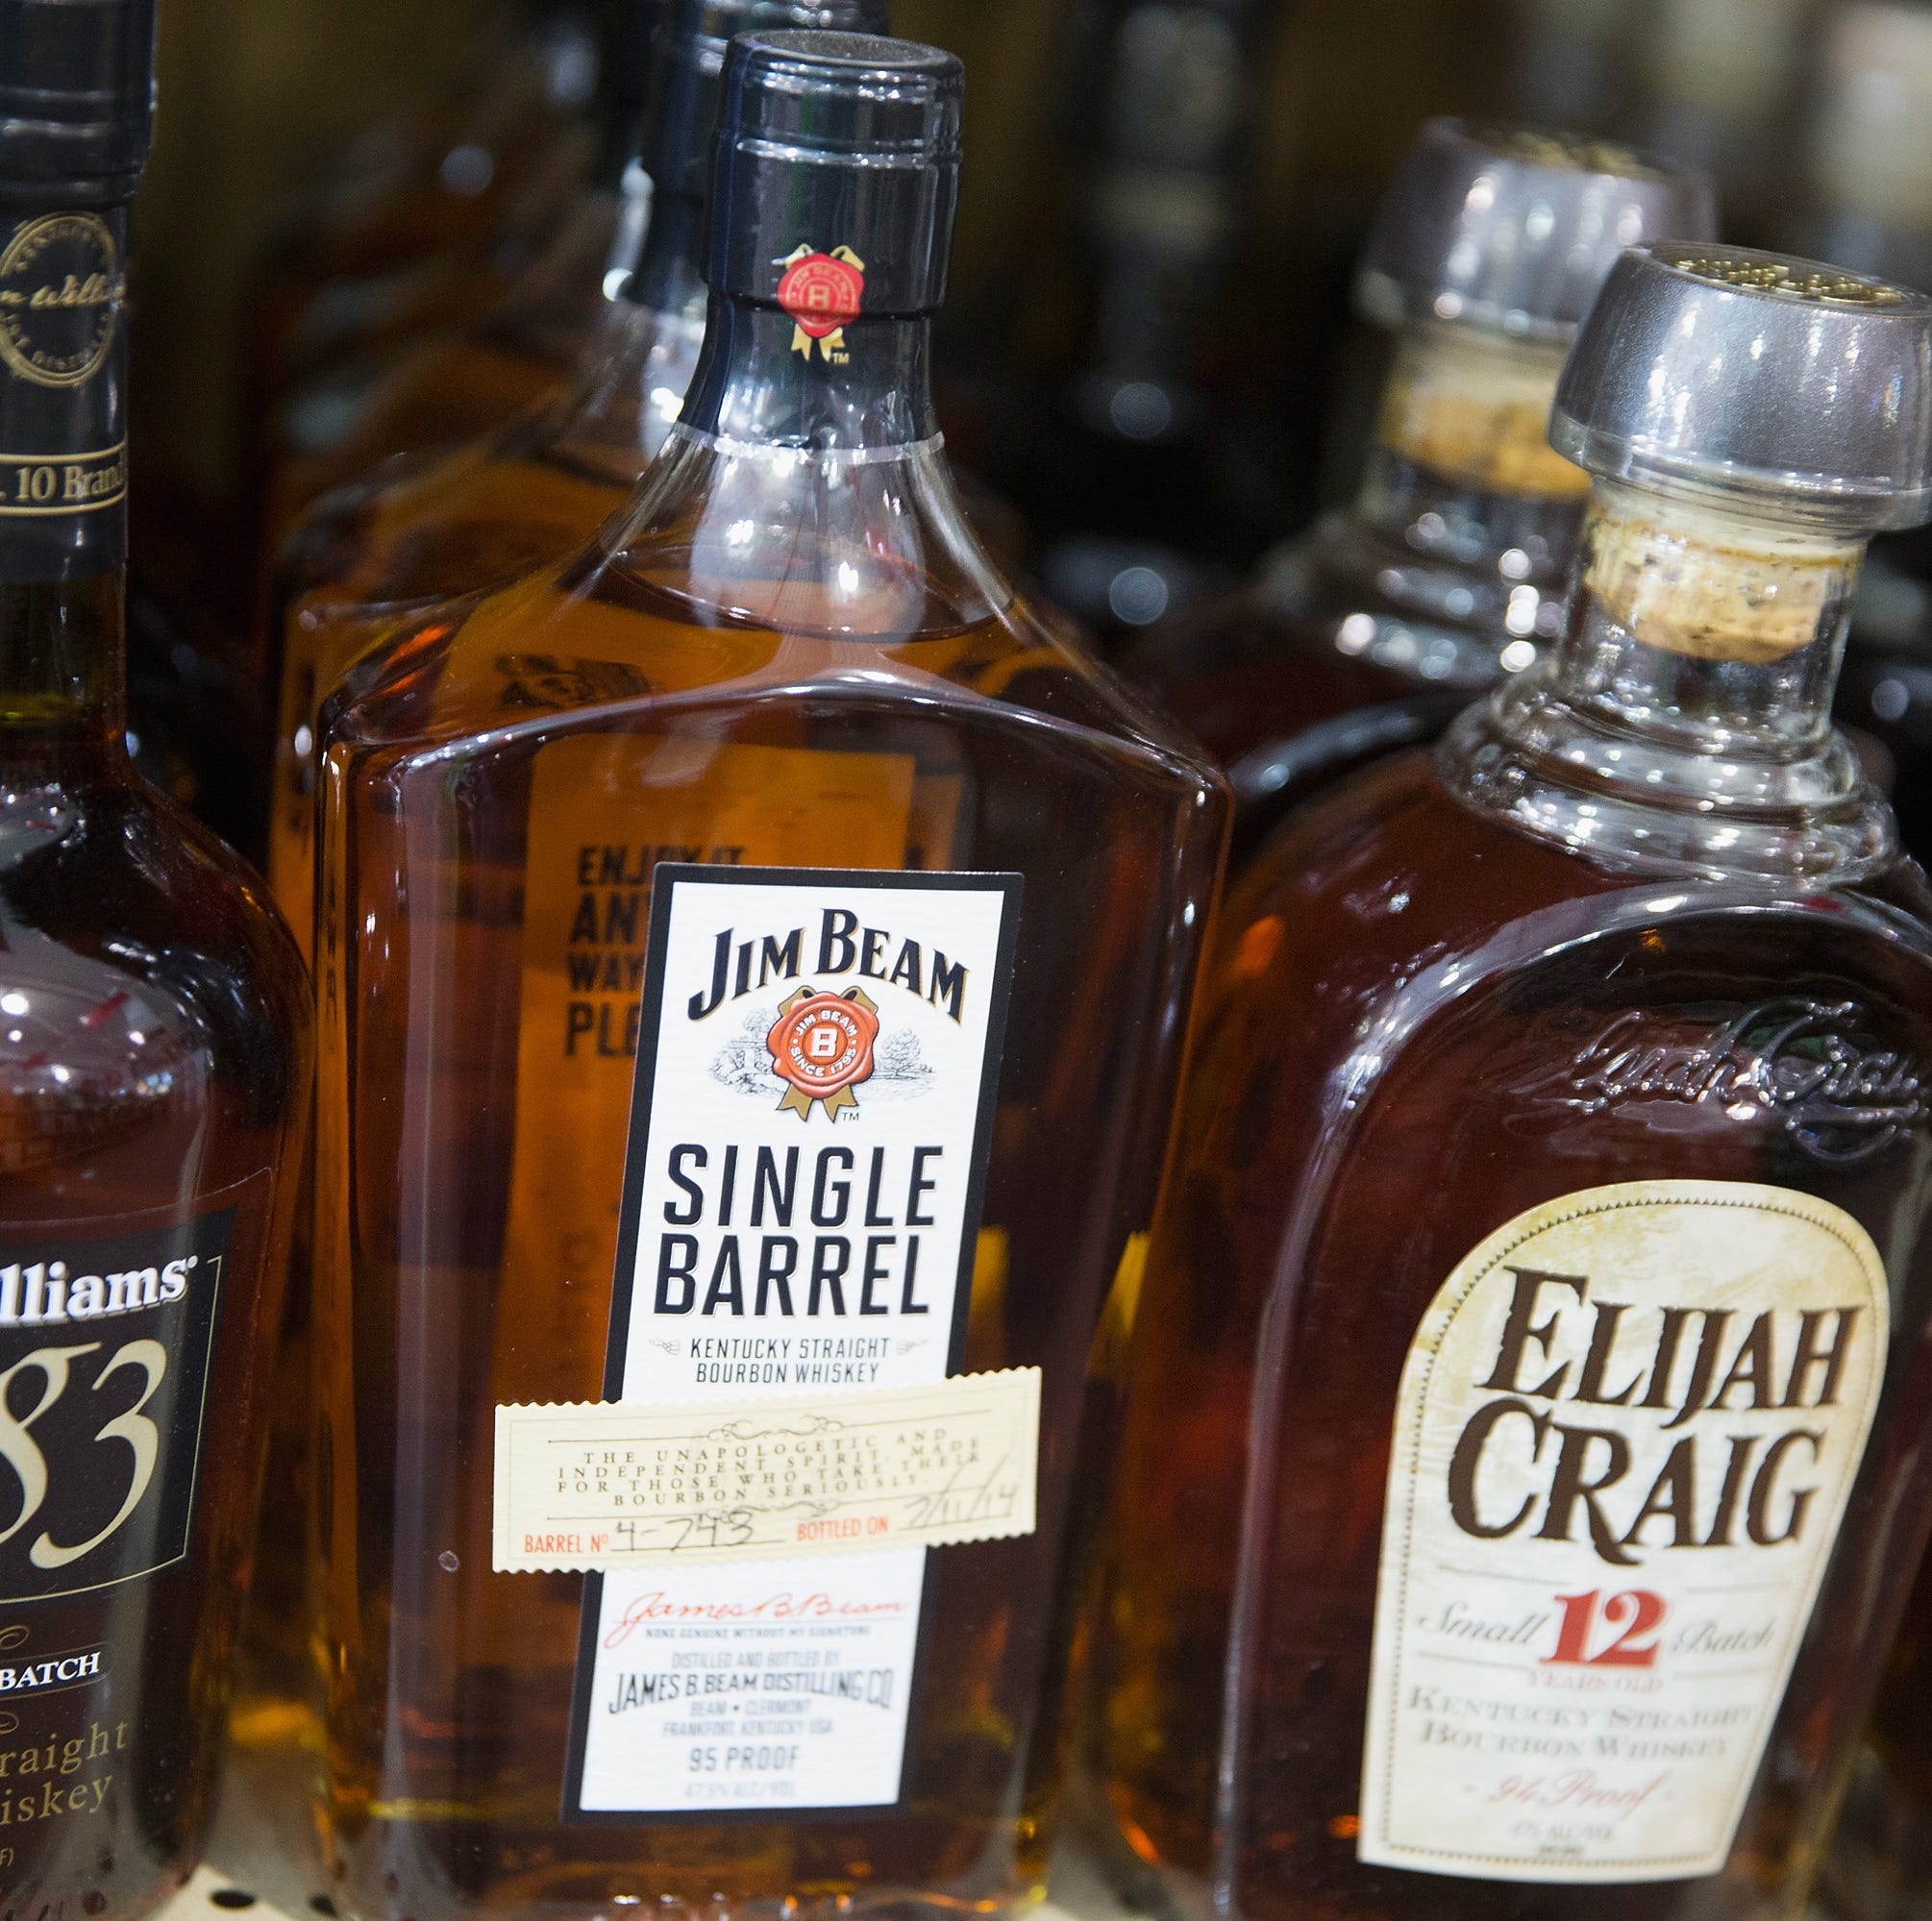 Tennessee liquor laws: Supreme Court decision may provide clarity for Memphis family